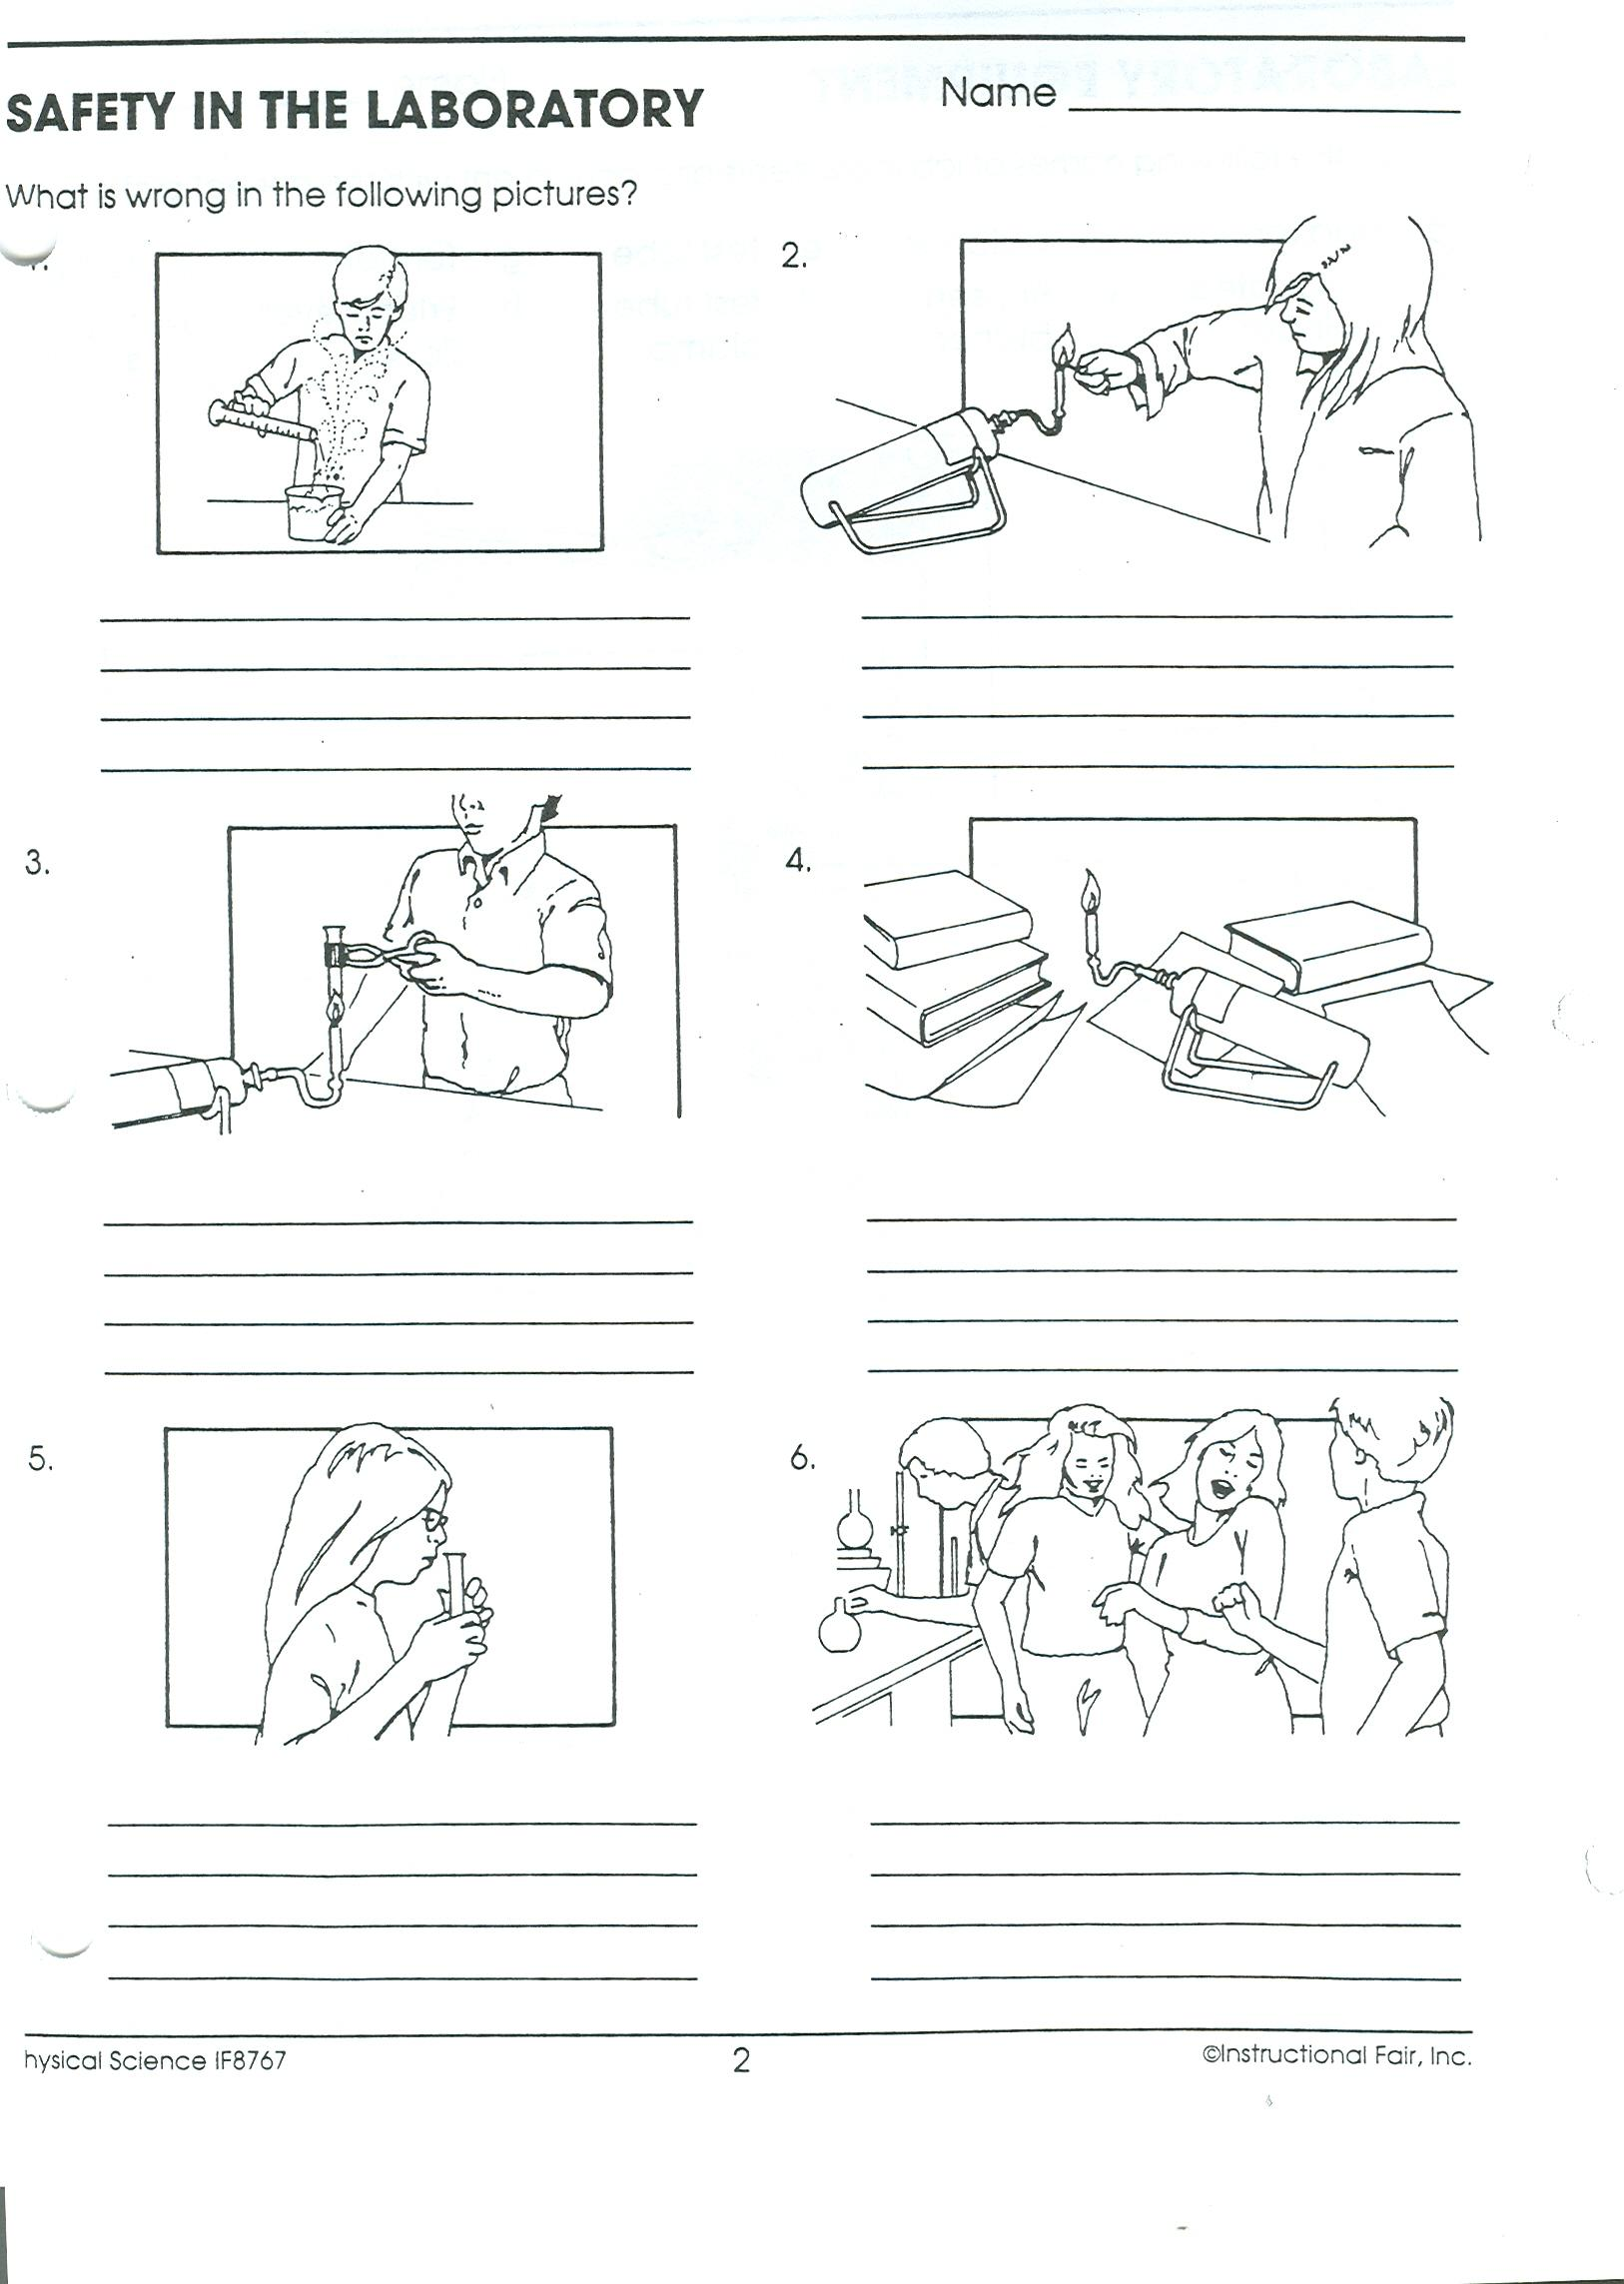 Uncategorized Science Lab Safety Worksheet science class on line e mail the safety rules that are being violated in each picture to mr sheehy